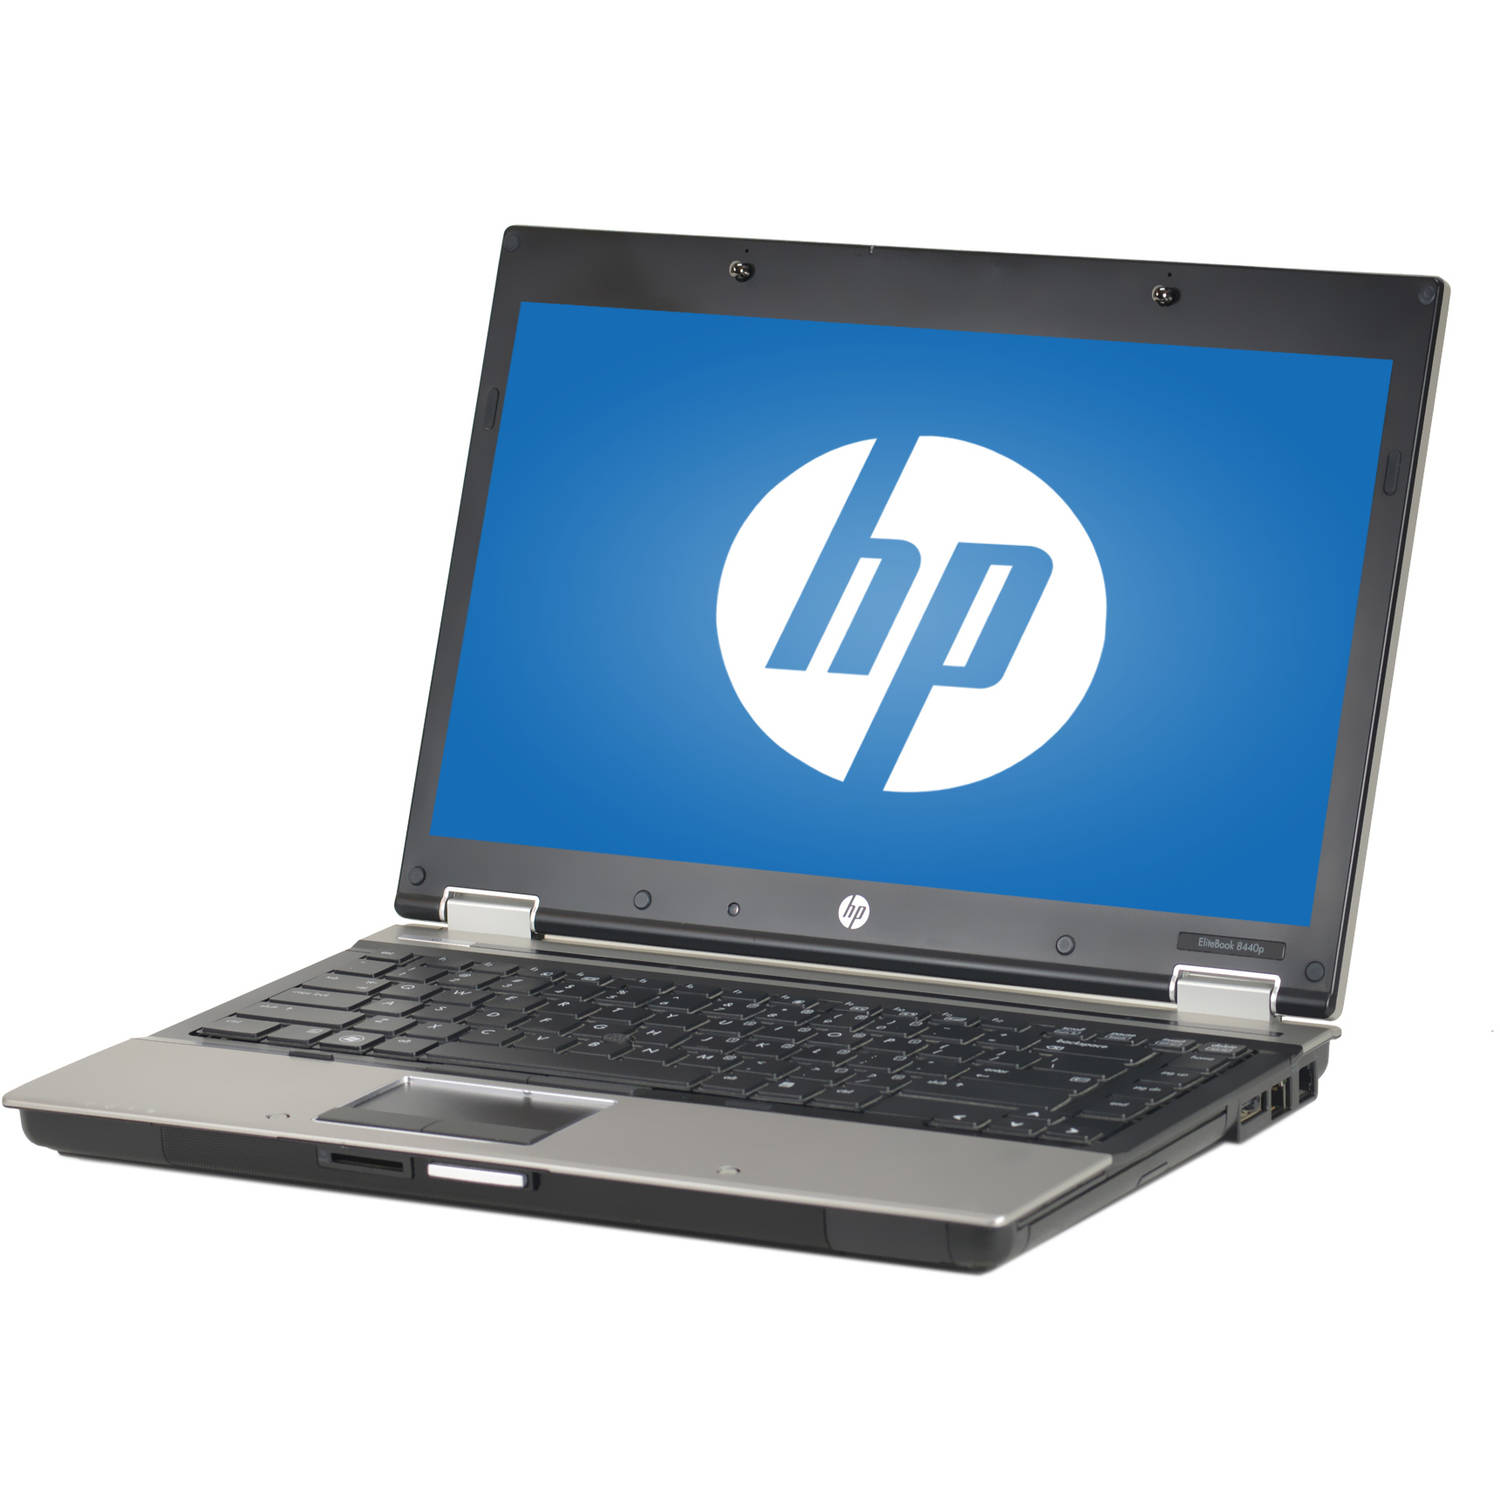 "Refurbished HP Silver 14.1"" EliteBook 8440P Laptop PC with Intel Core i5-520M Processor, 4GB Memory, 500GB Hard Drive and Windows 10 Home"